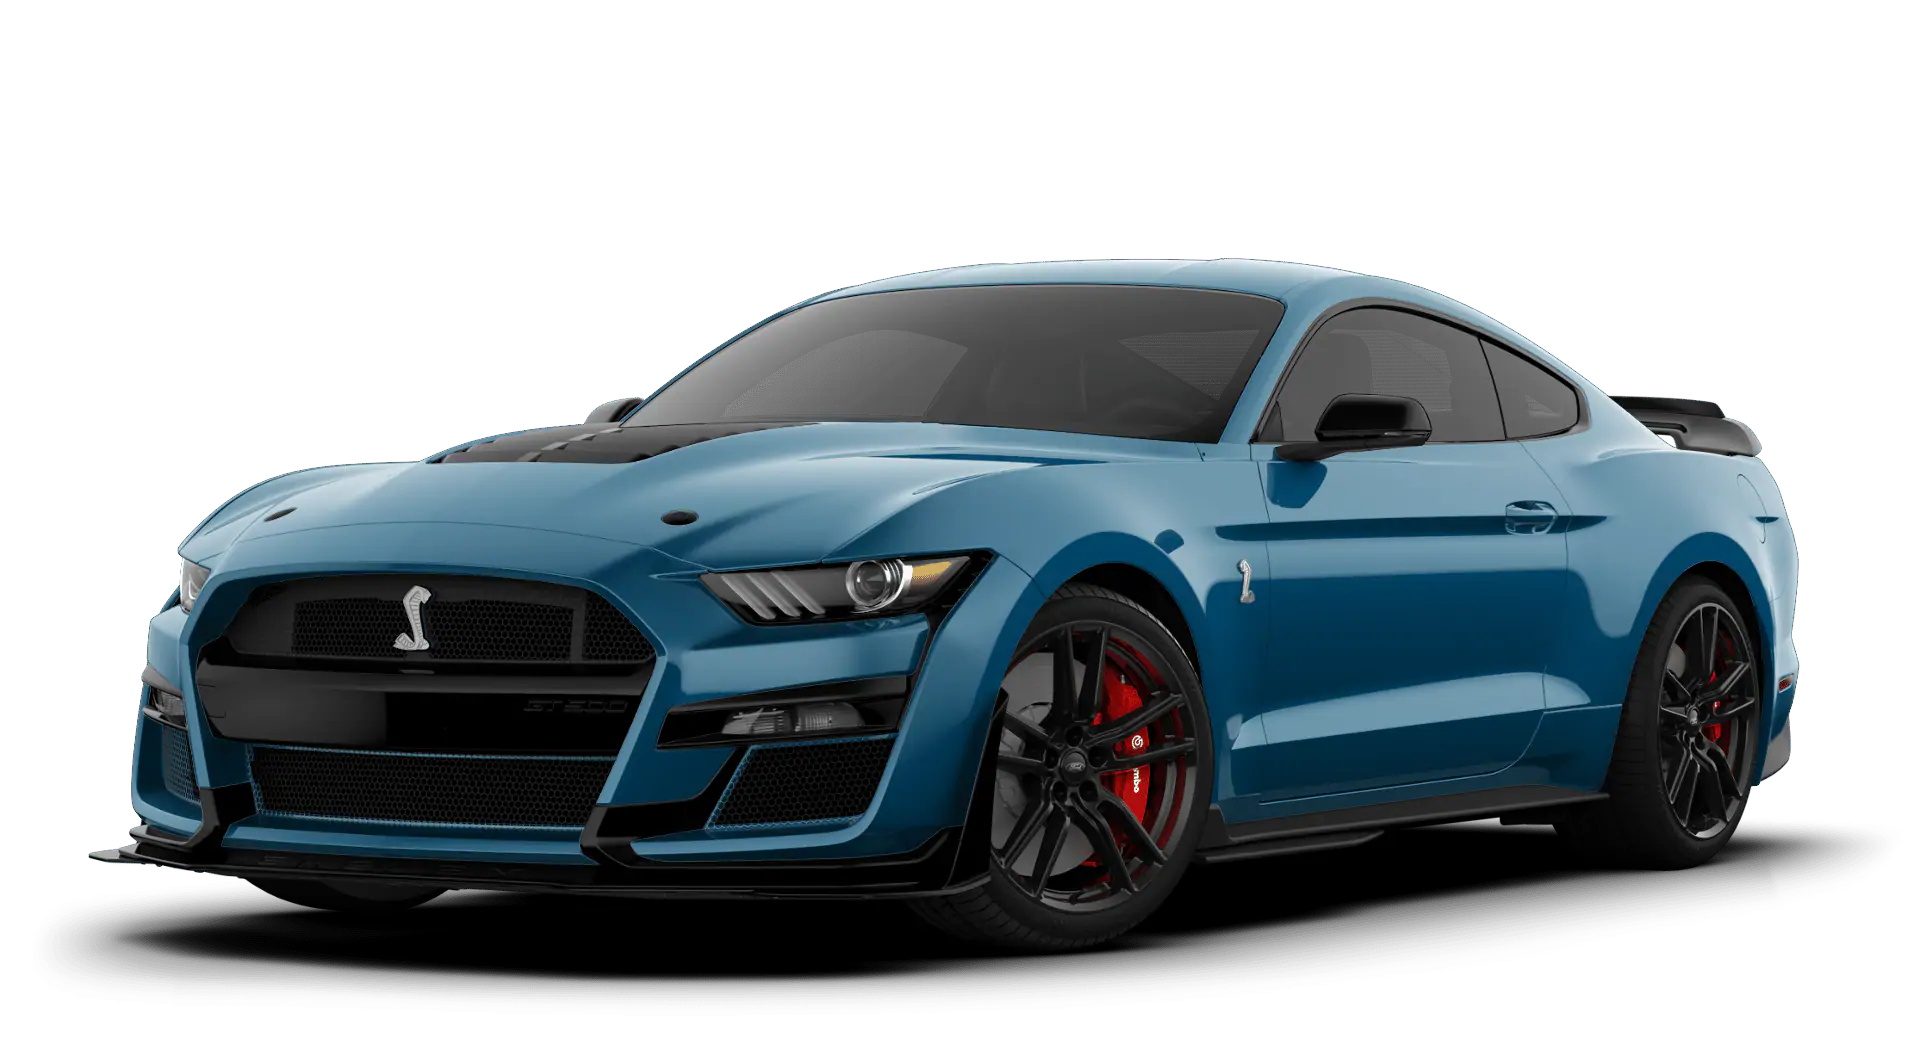 2020 Ford Mustang Shelby GT500 Ford Performance Blue